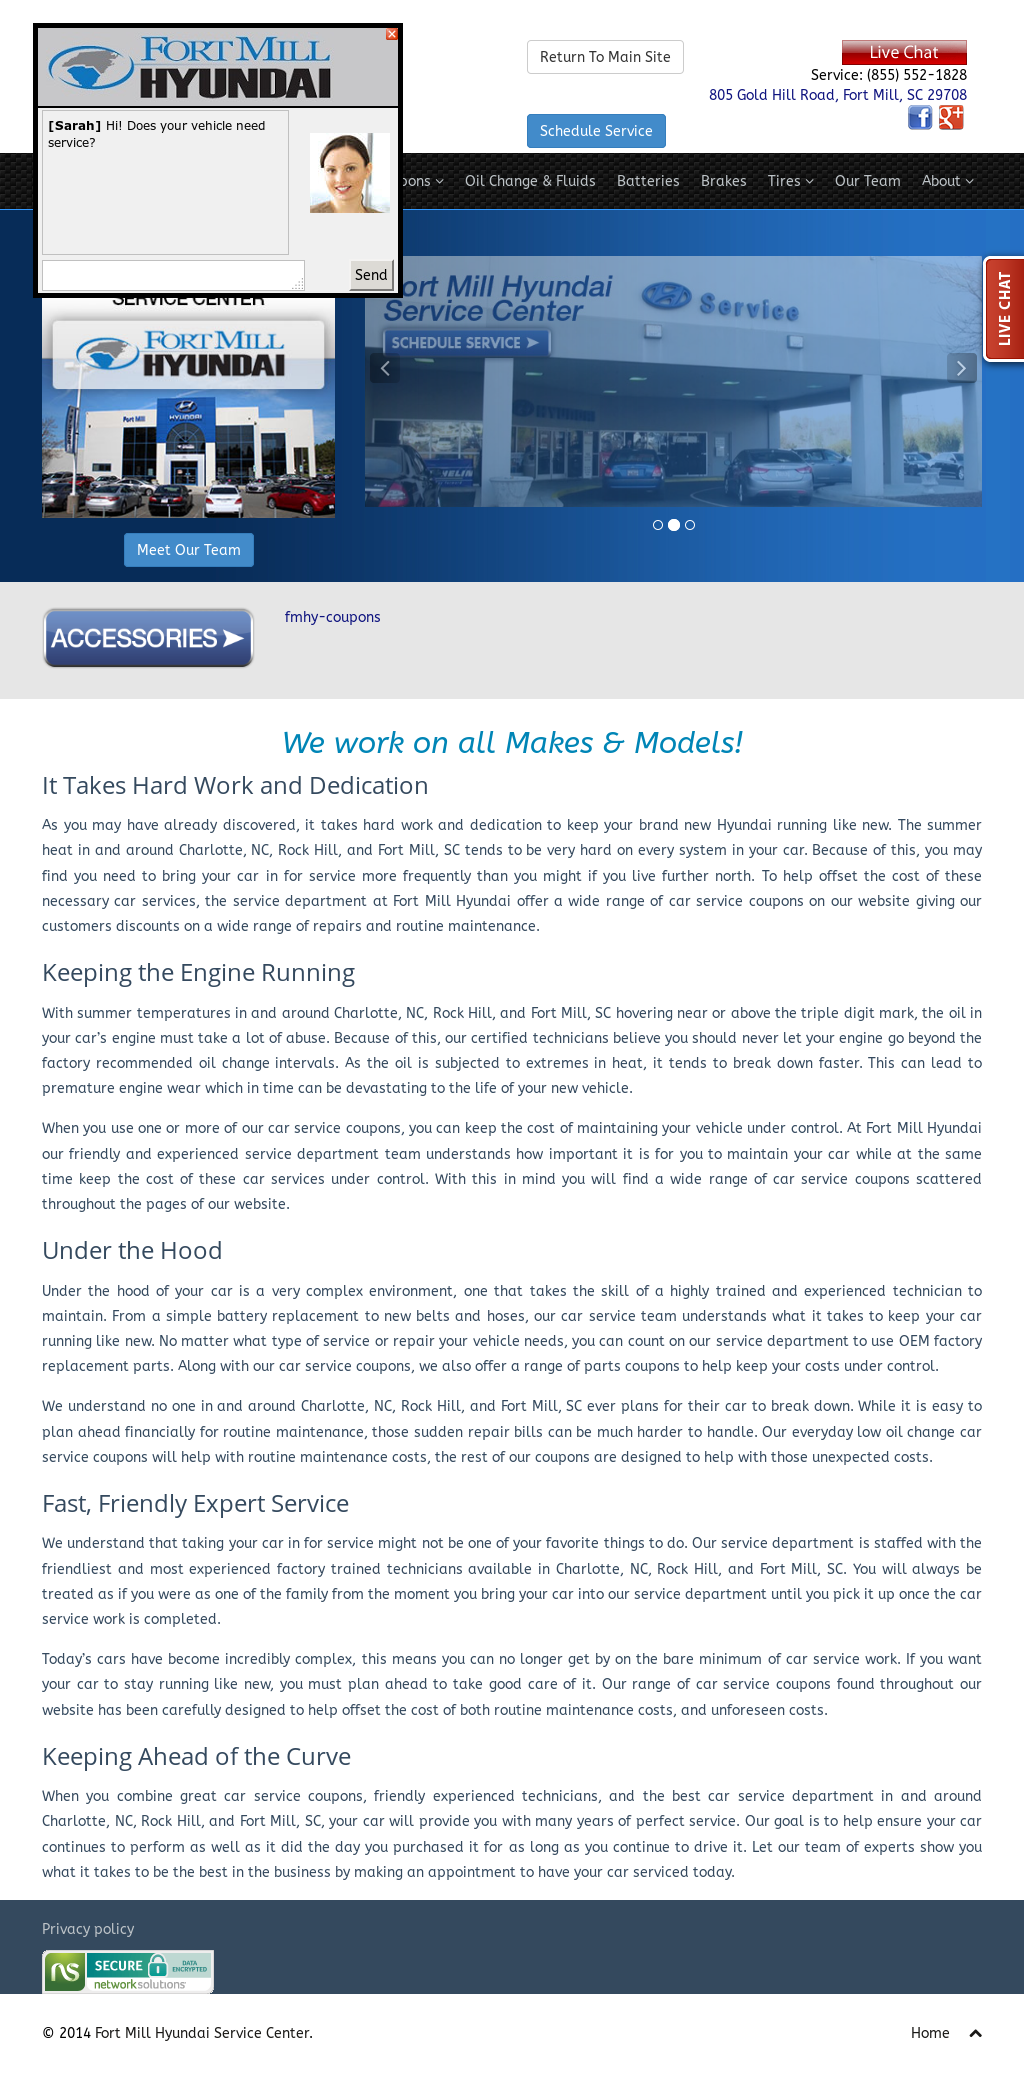 Fort Mill Hyundai Service Center Compeors Revenue And Employees Owler Company Profile